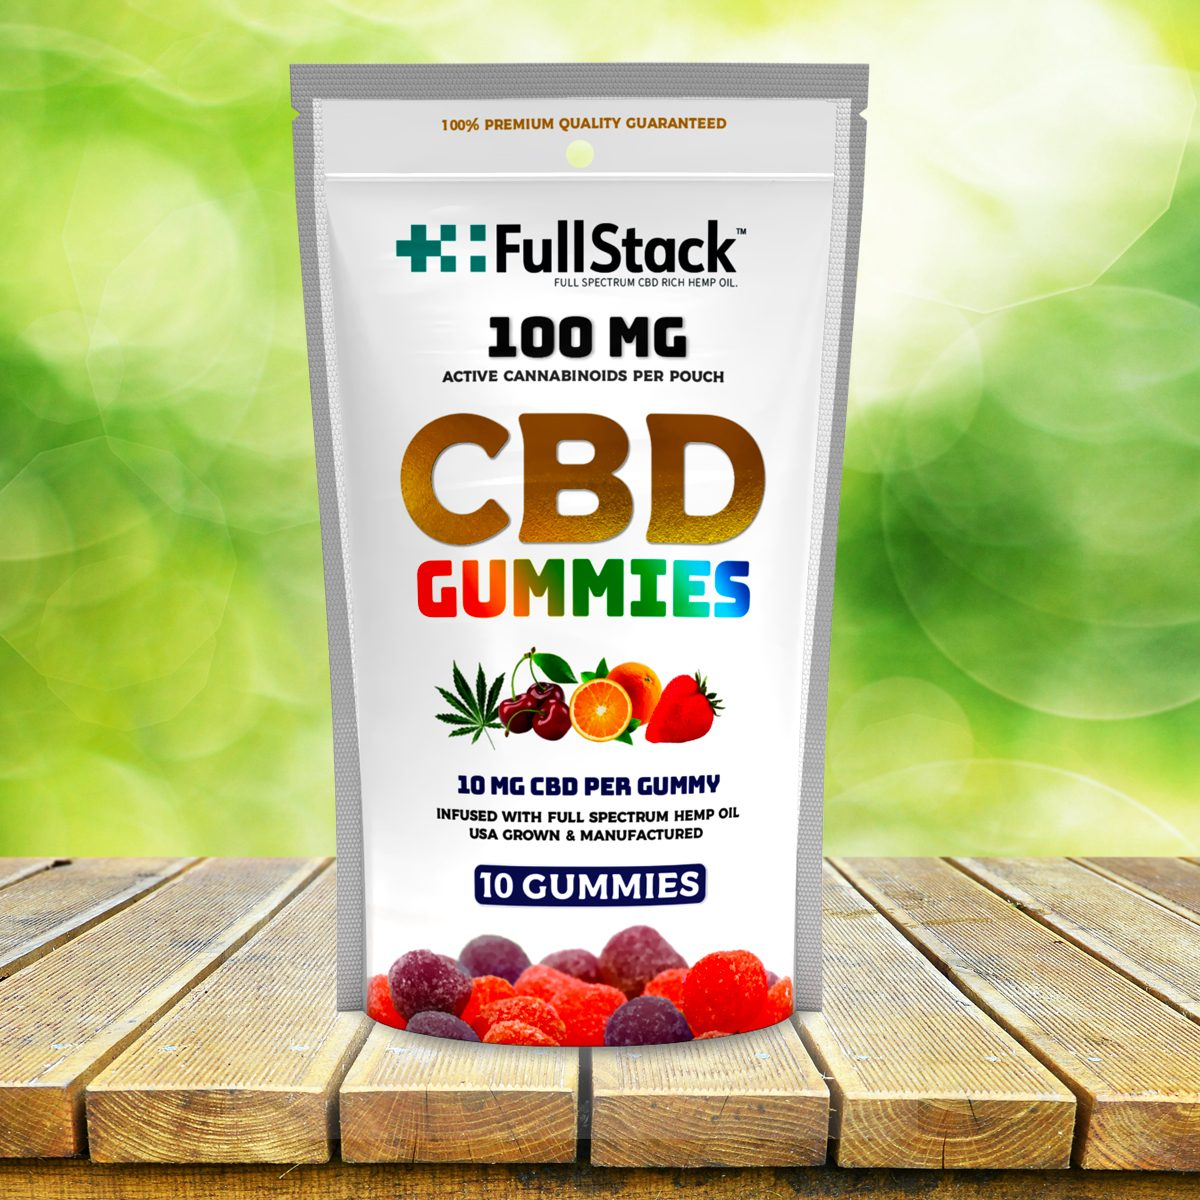 fullstack cbd gummies 10 pack 100mg